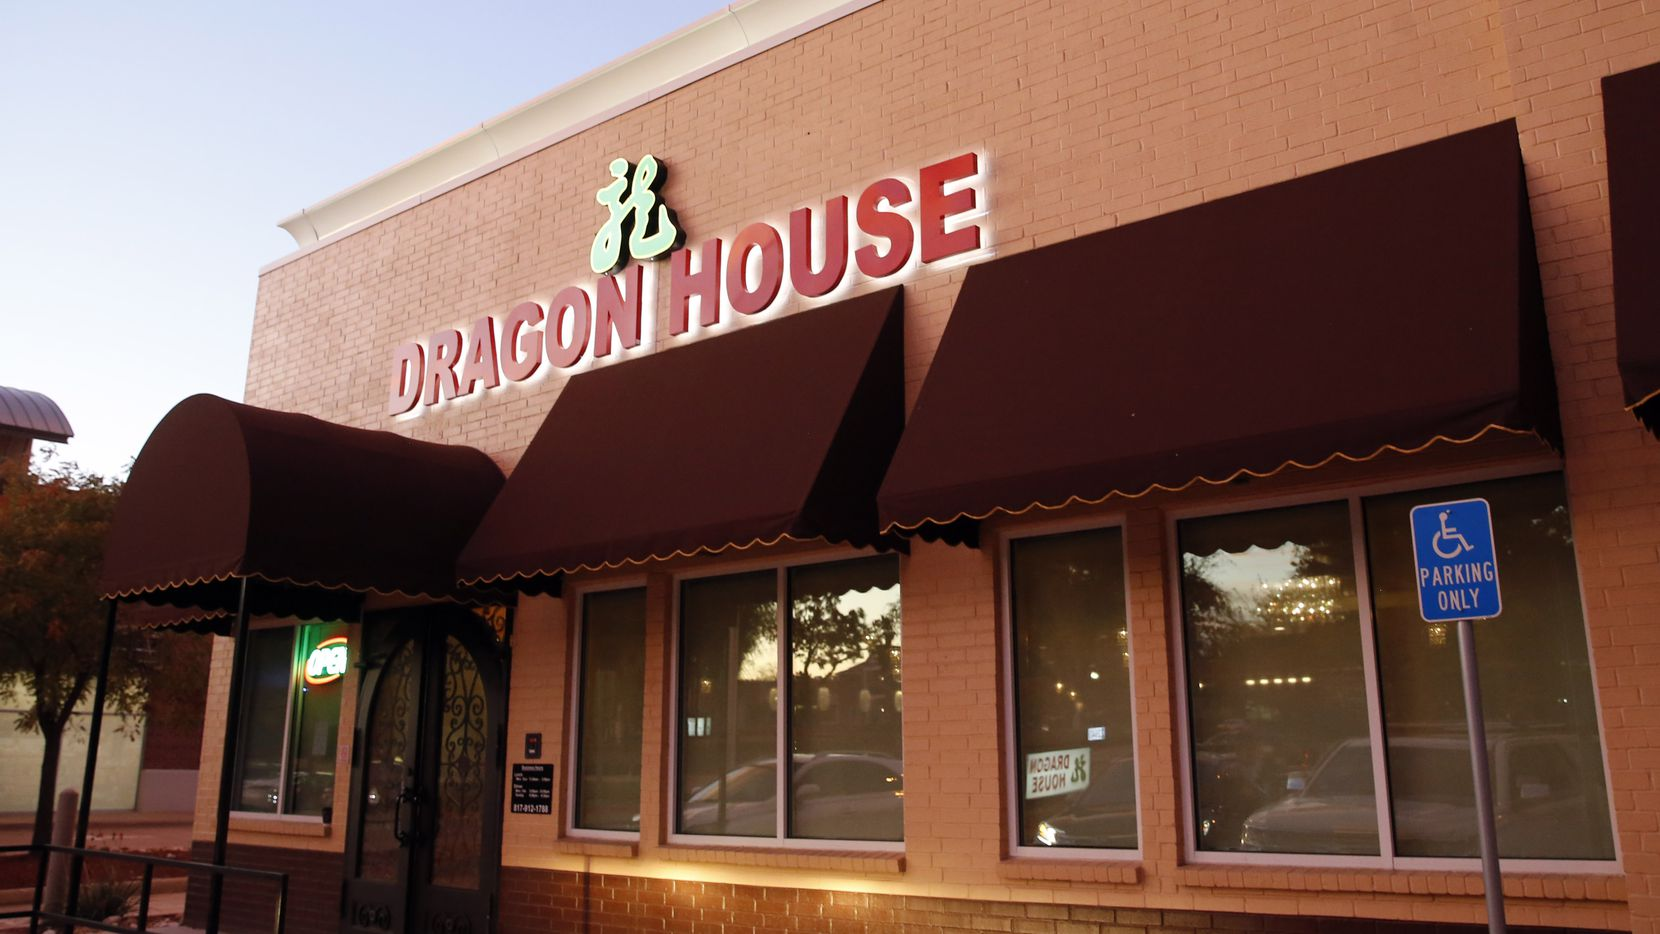 Dragon House A New Three Star Chinese Restaurant In